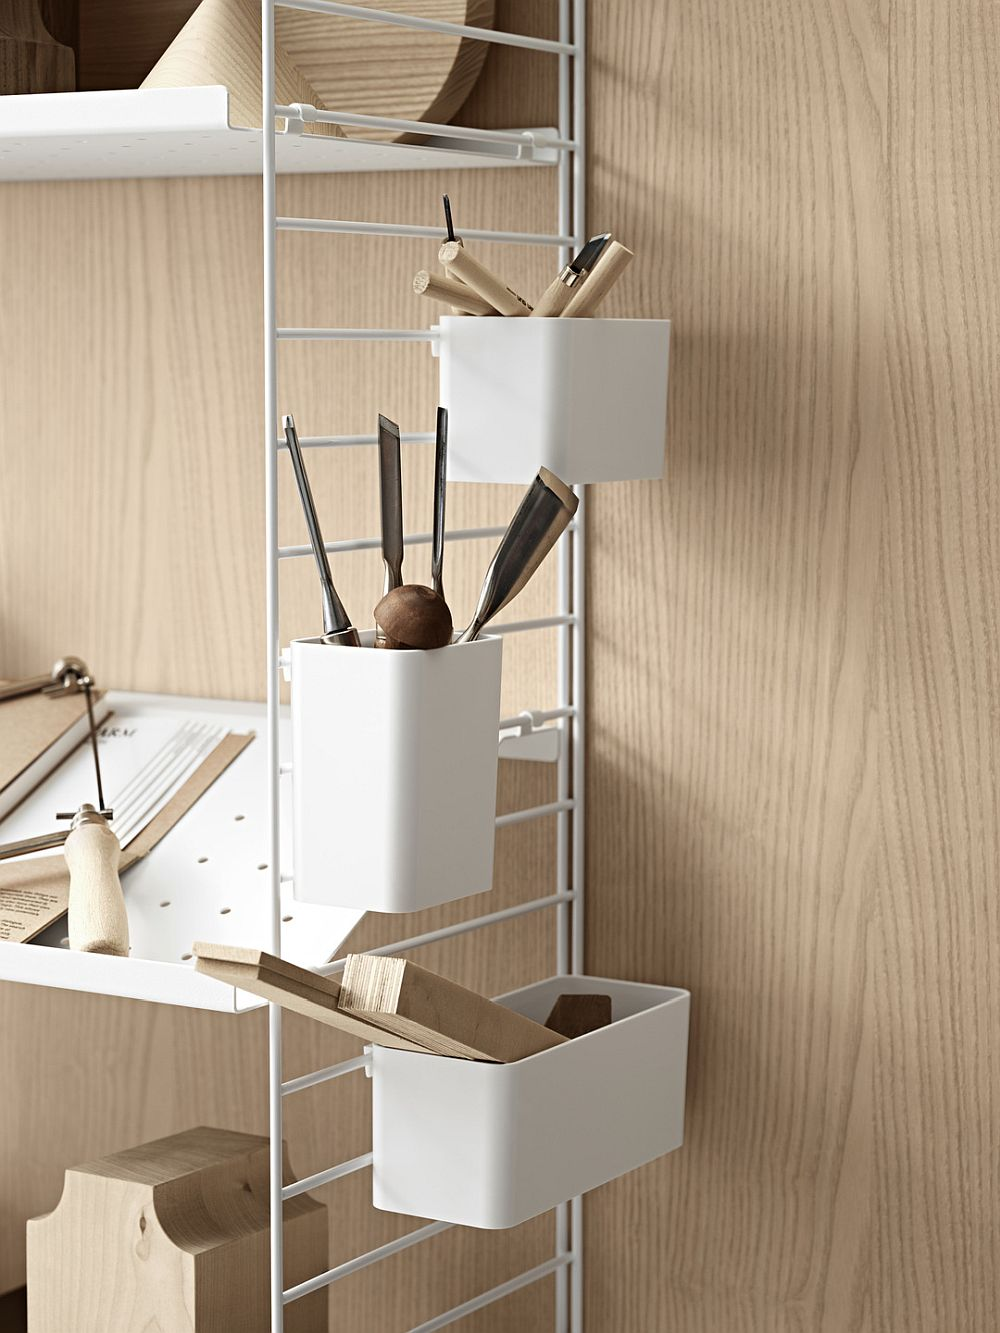 Smart modular String shelving system for better organization of the workspace